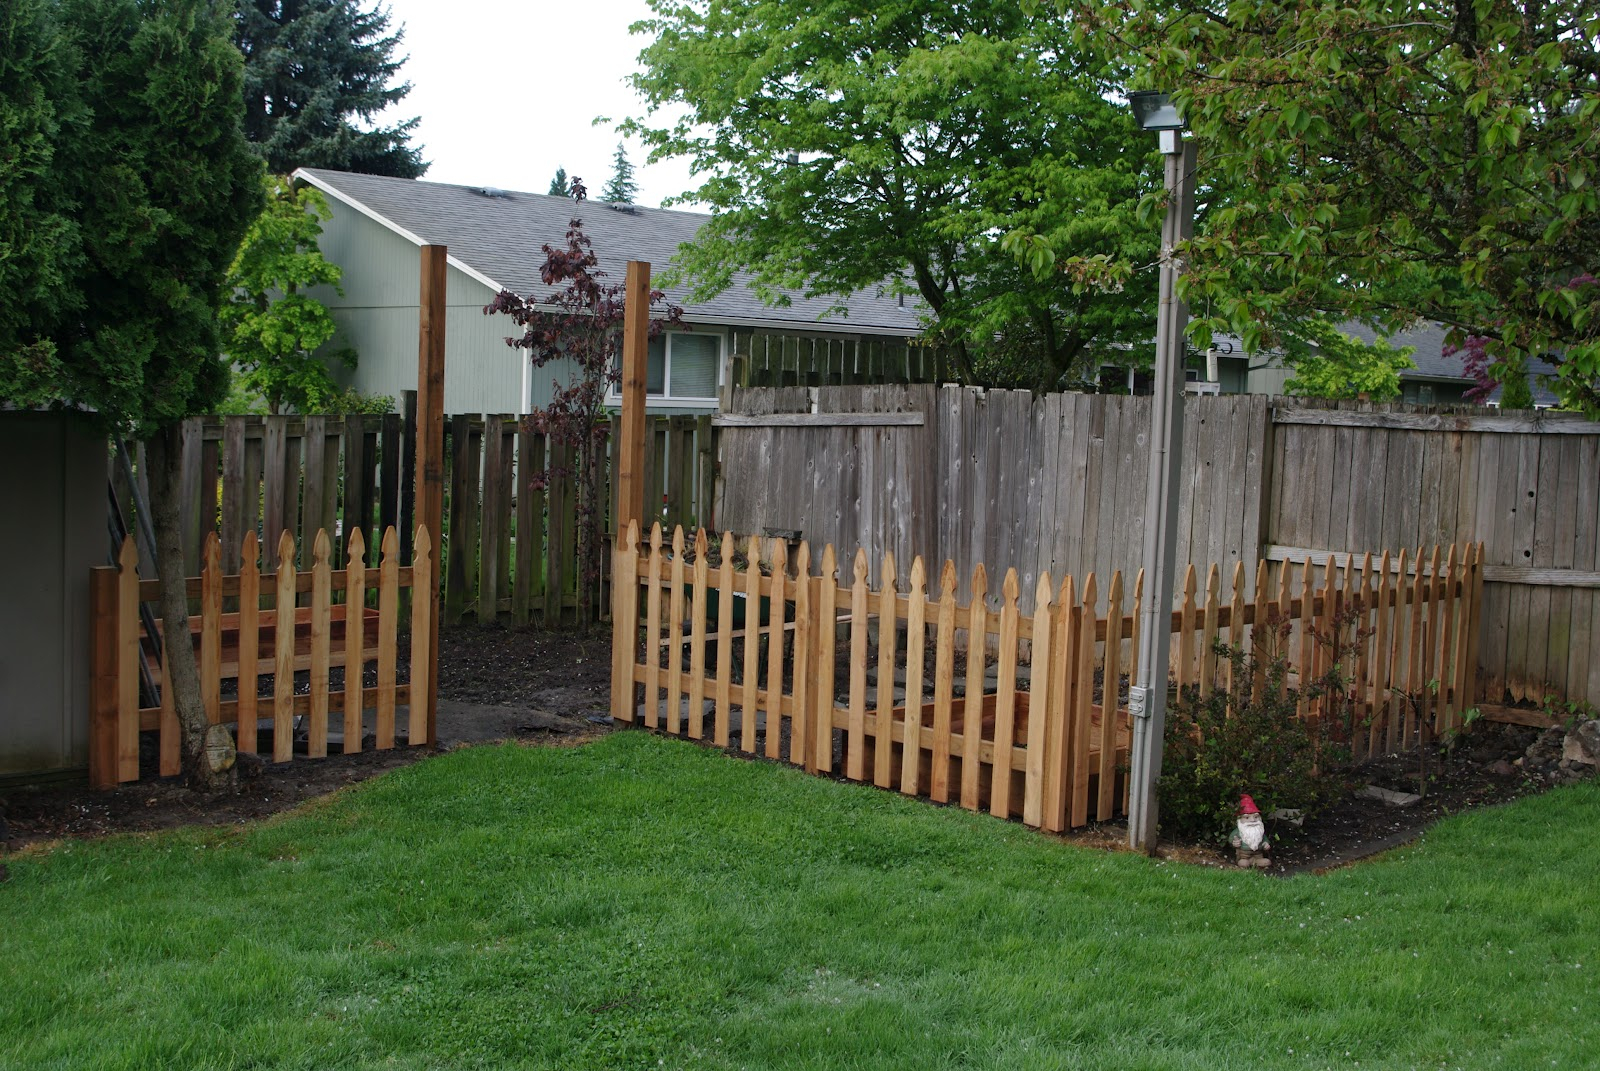 Homelifescience Backyard Garden Fence In Progress throughout 11 Genius Designs of How to Makeover Backyard Garden Fence